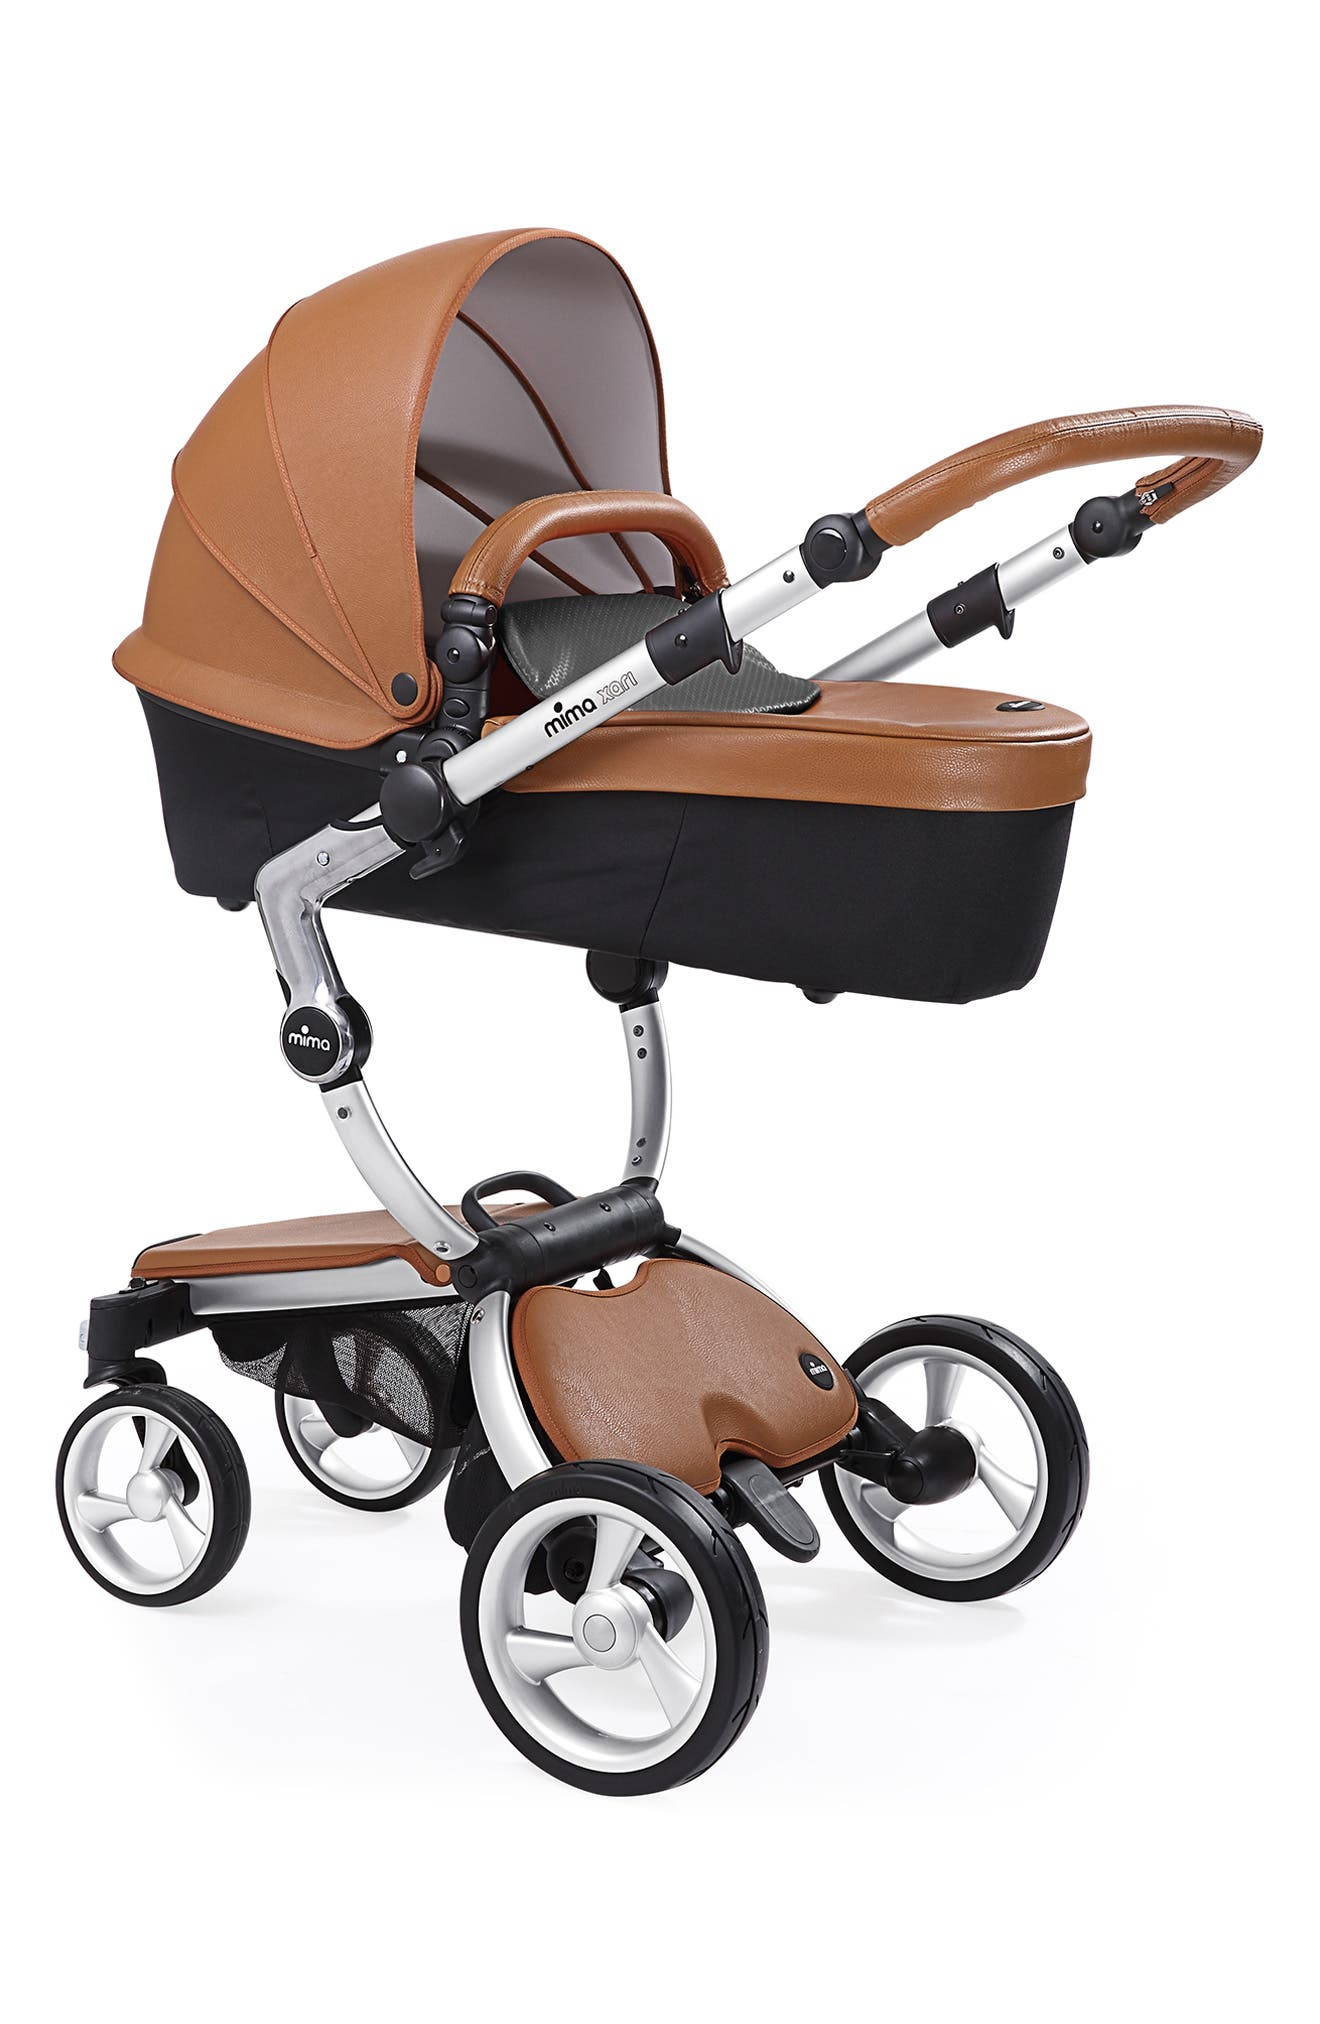 MIMA, Xari Aluminum Chassis Stroller with Reversible Reclining Seat & Carrycot, Alternate thumbnail 2, color, ALUM/ CAMEL/ BLACK